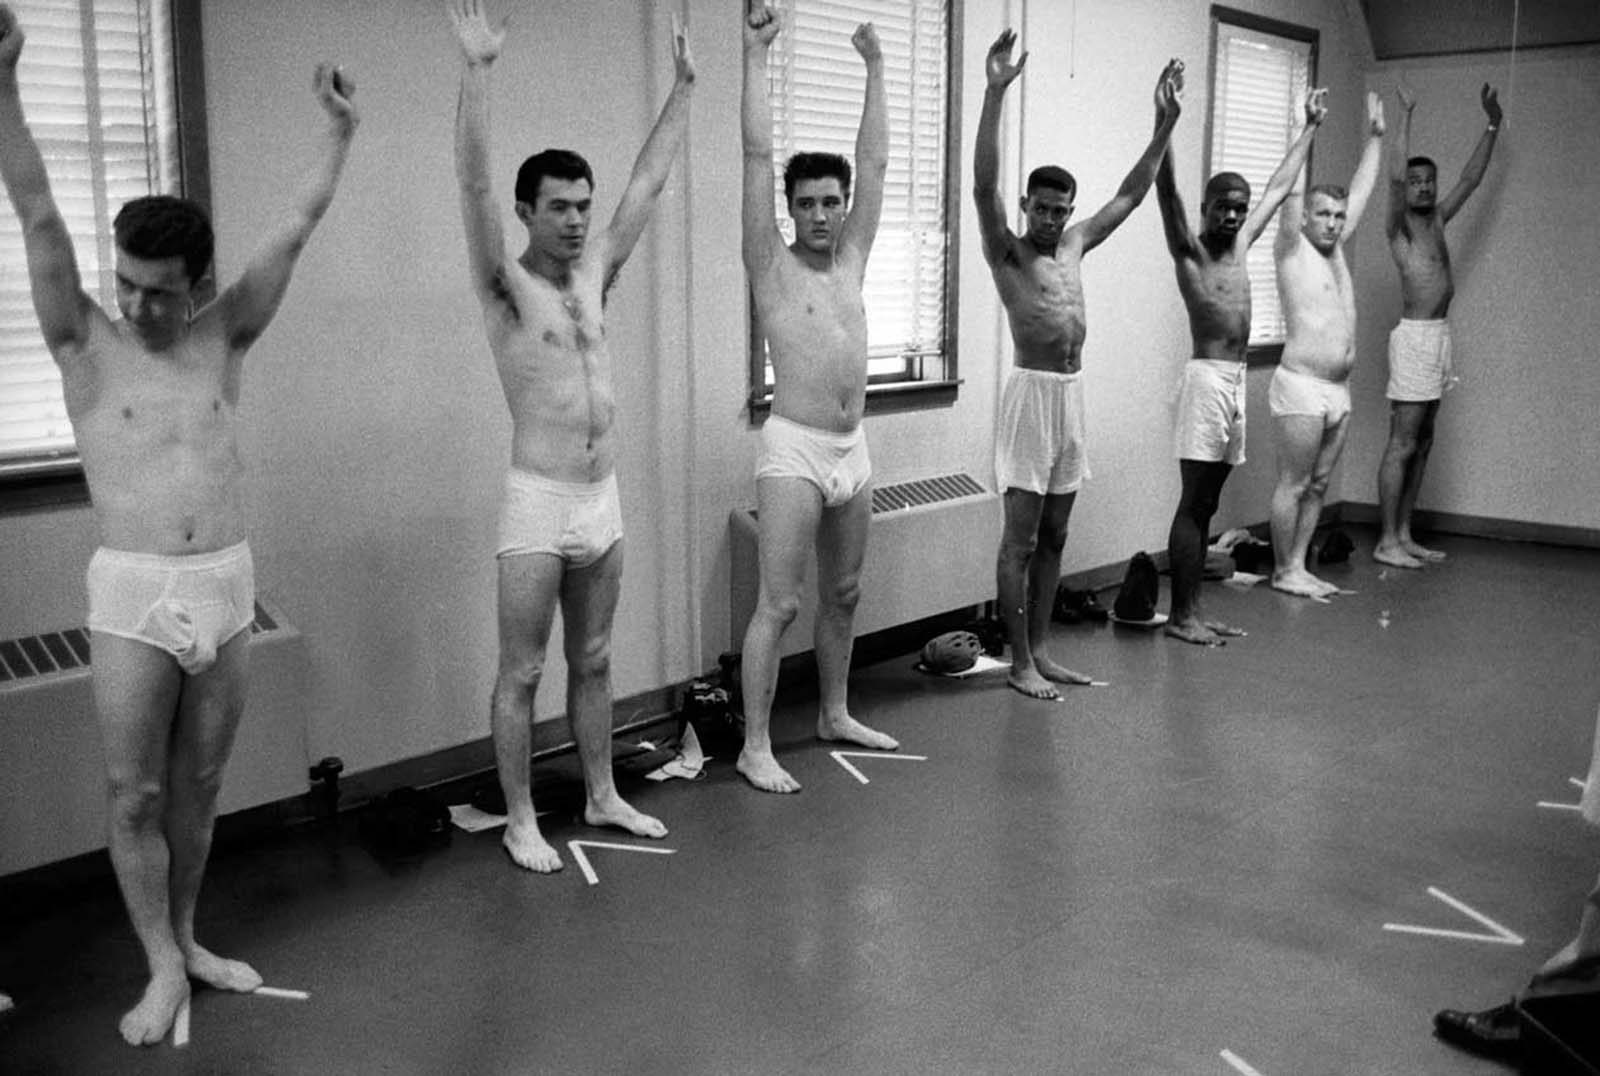 Wearing only underwear, Pvt. Elvis Presley raises his arms along with several other inductees during an inspection at Ft. Chaffee.